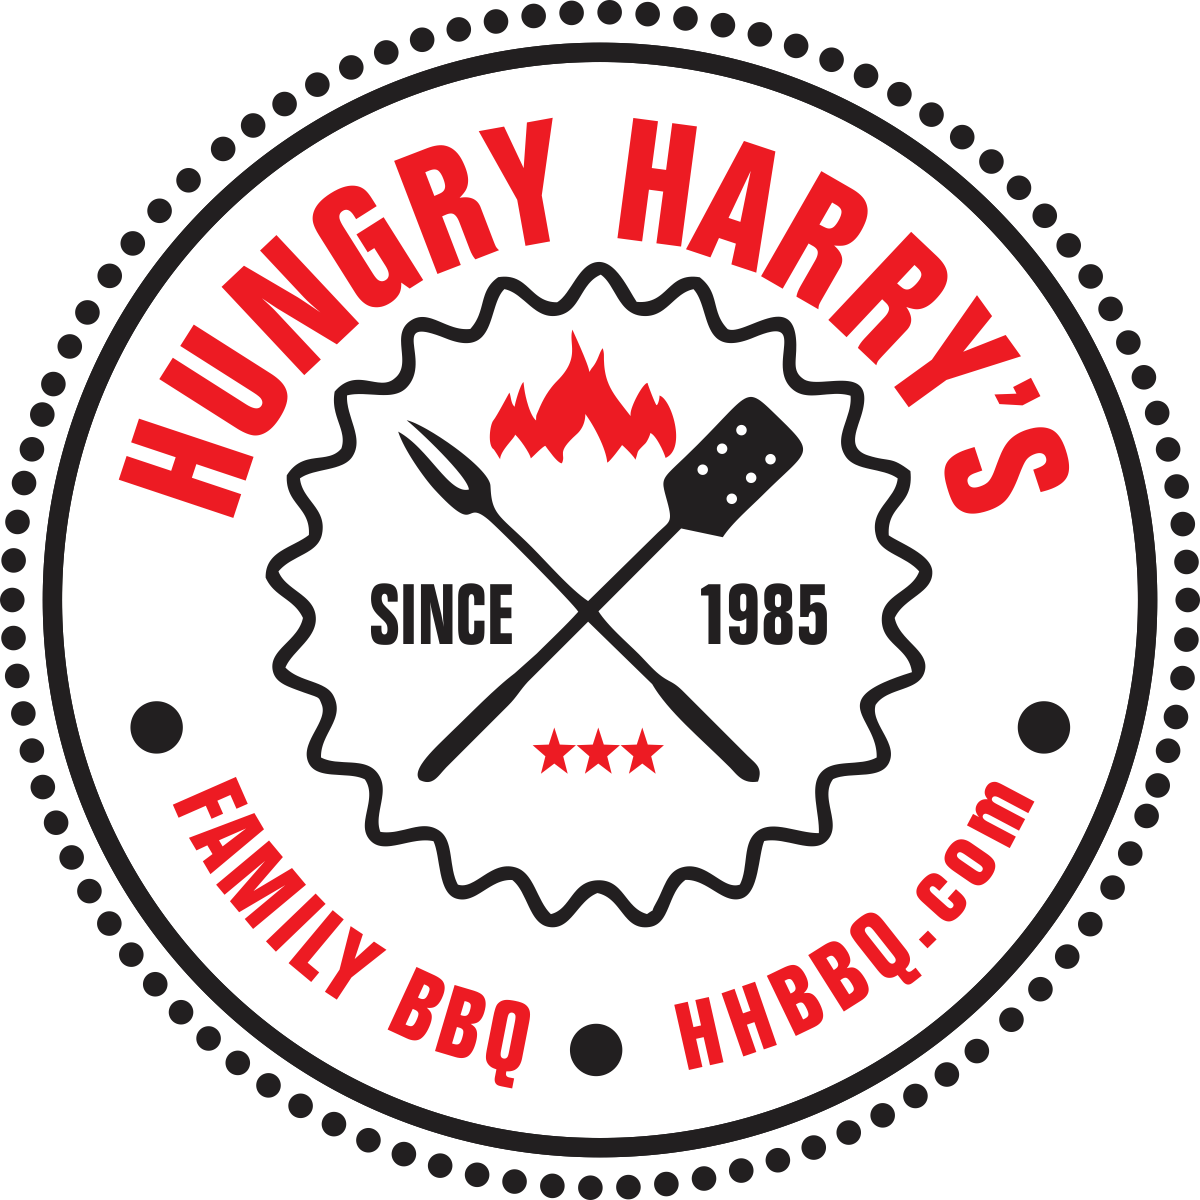 Hungry Harry's Family BBQ | HHBBQ